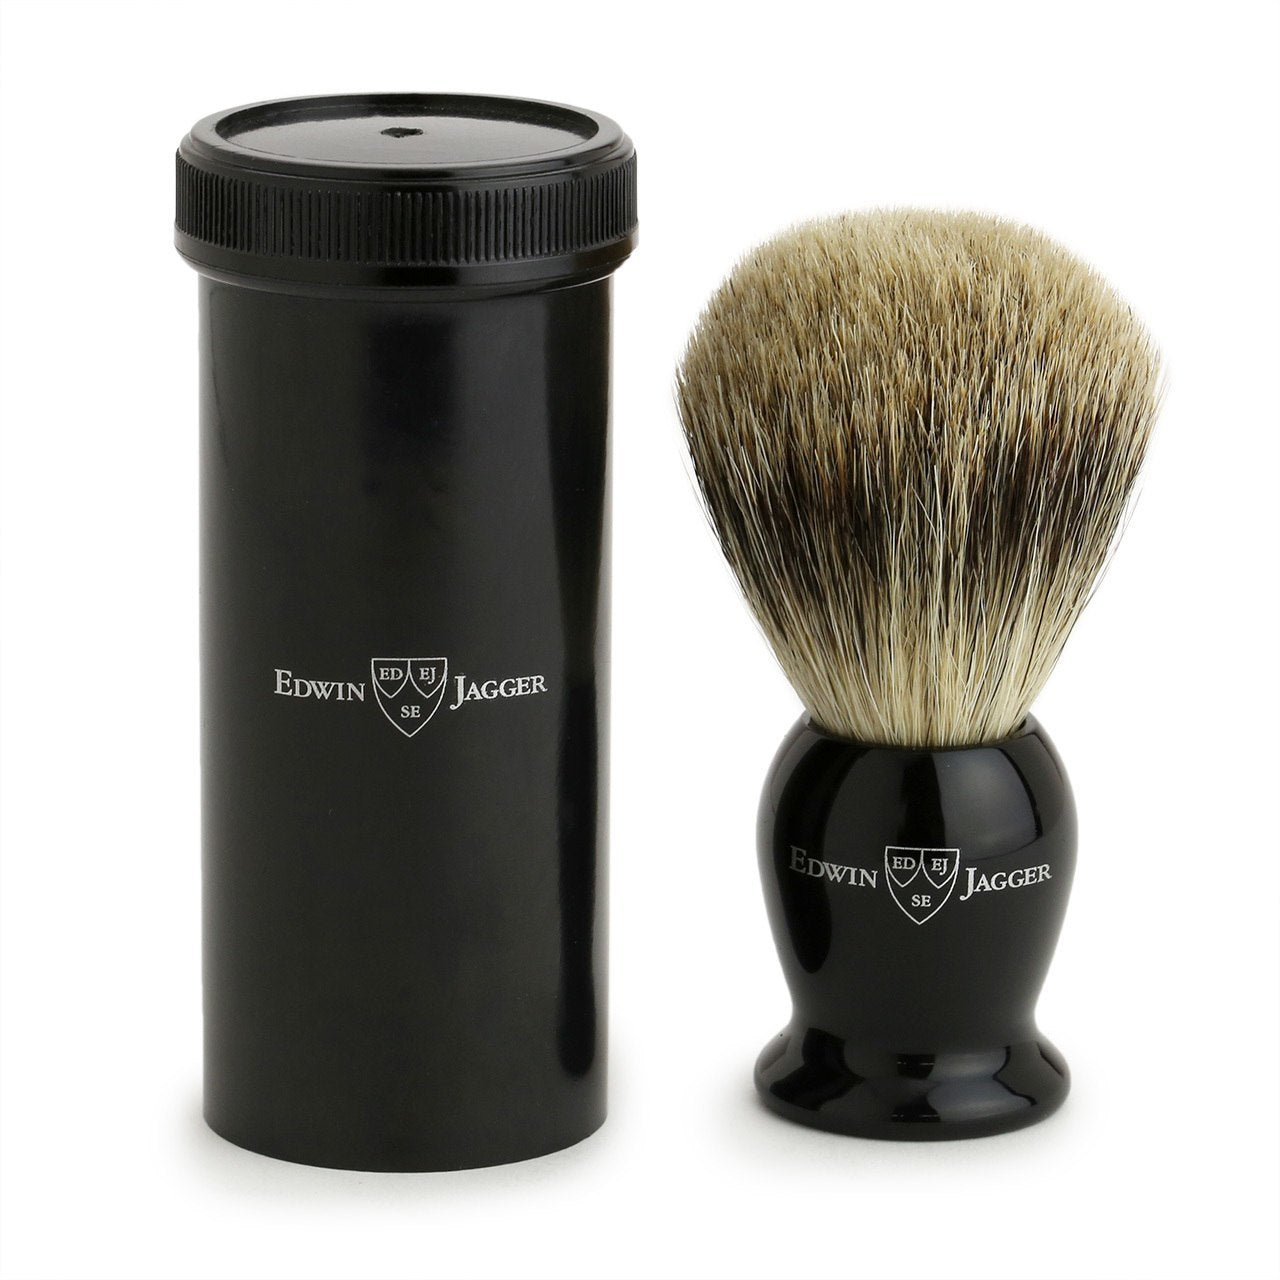 Edwin Jagger Best Badger Travel Brush & Tube - Imitation Ebony